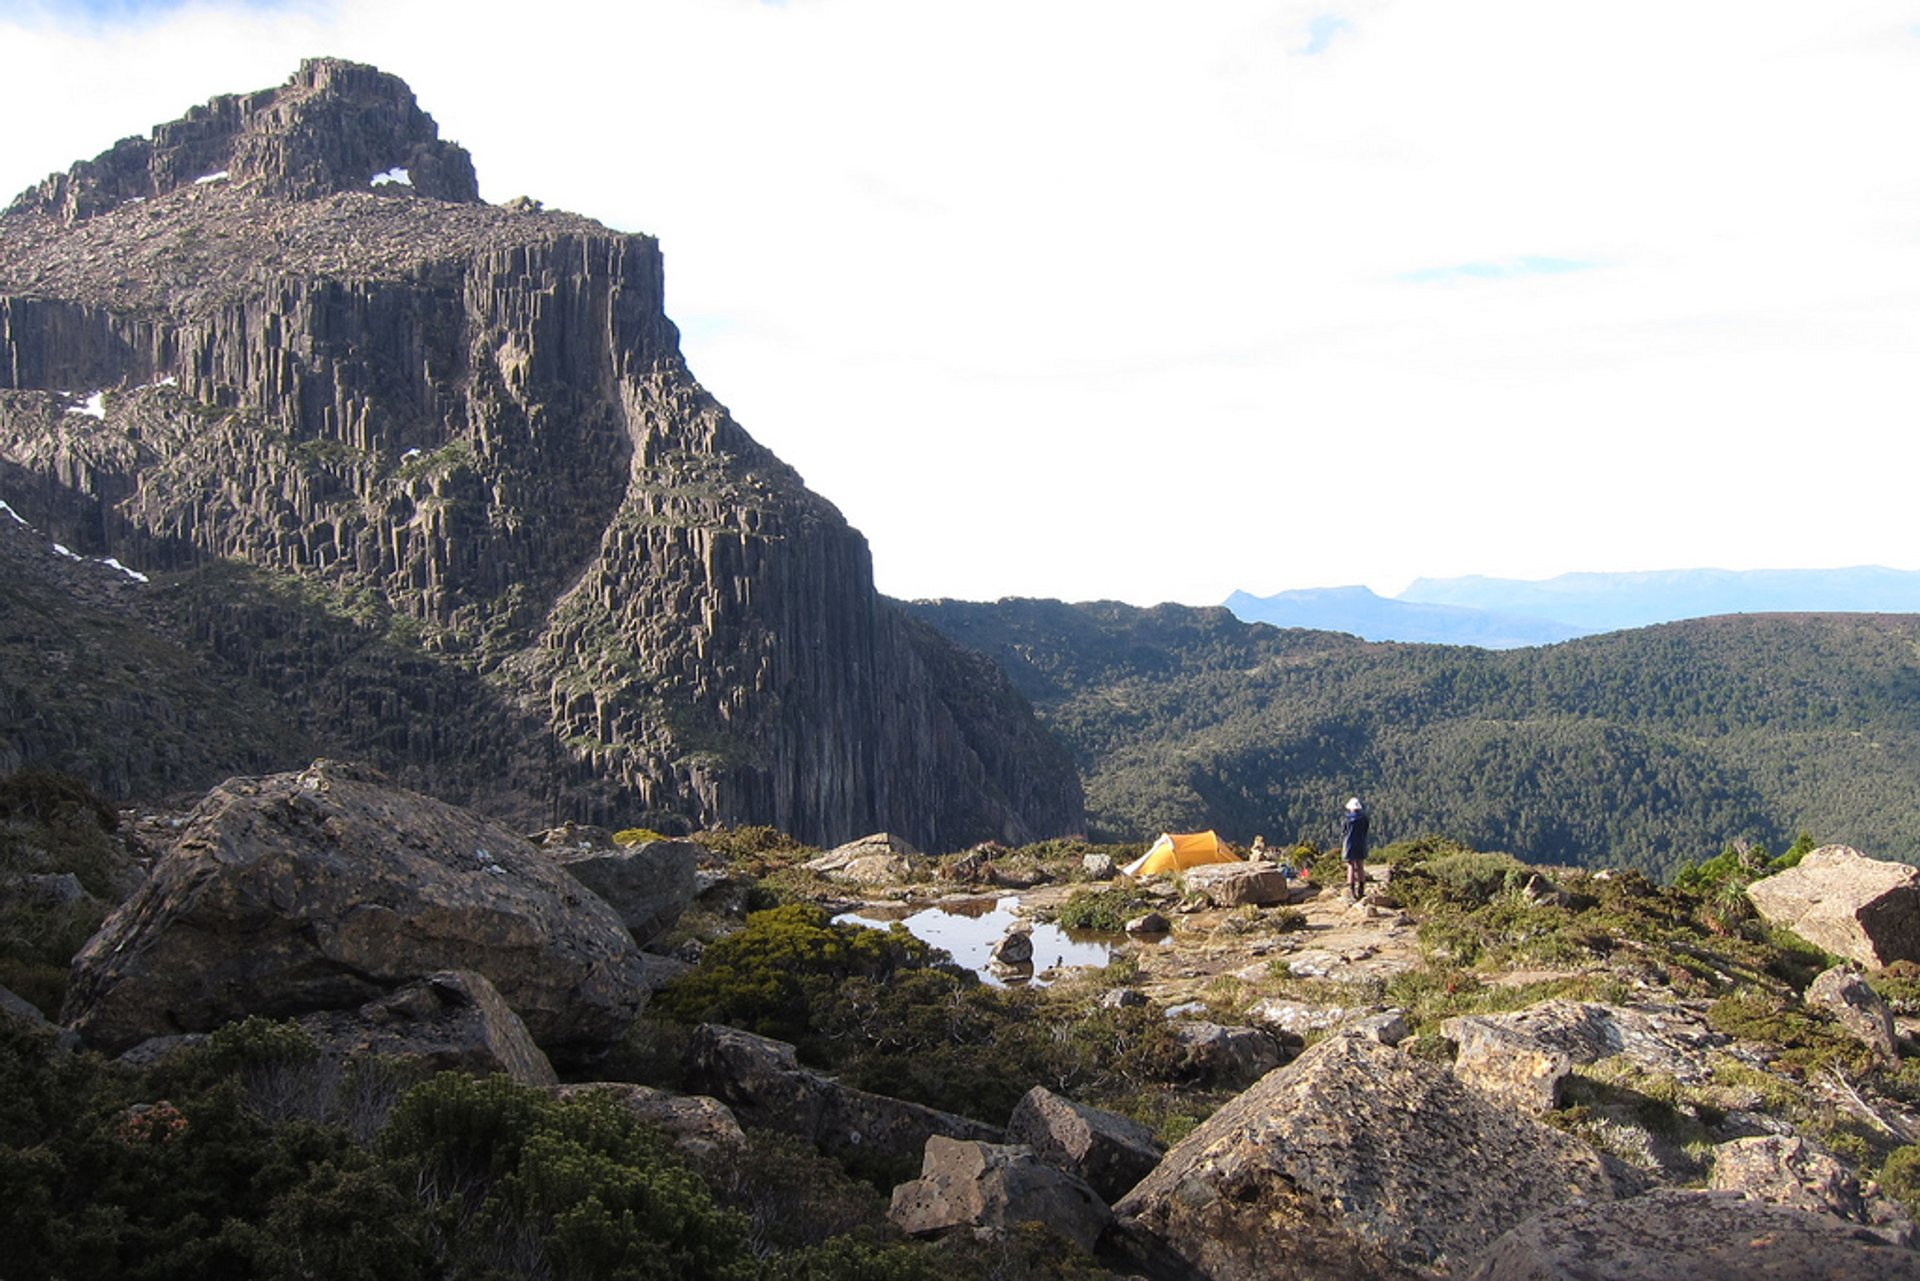 Mt Anne Circuit—a rather demanding 3-day circuit with a strenuous climb up to get to the Mt Eliza alpine zone. You will encounter a challenging traverse and boggy terrain, so make sure you are well-prepared! 2019